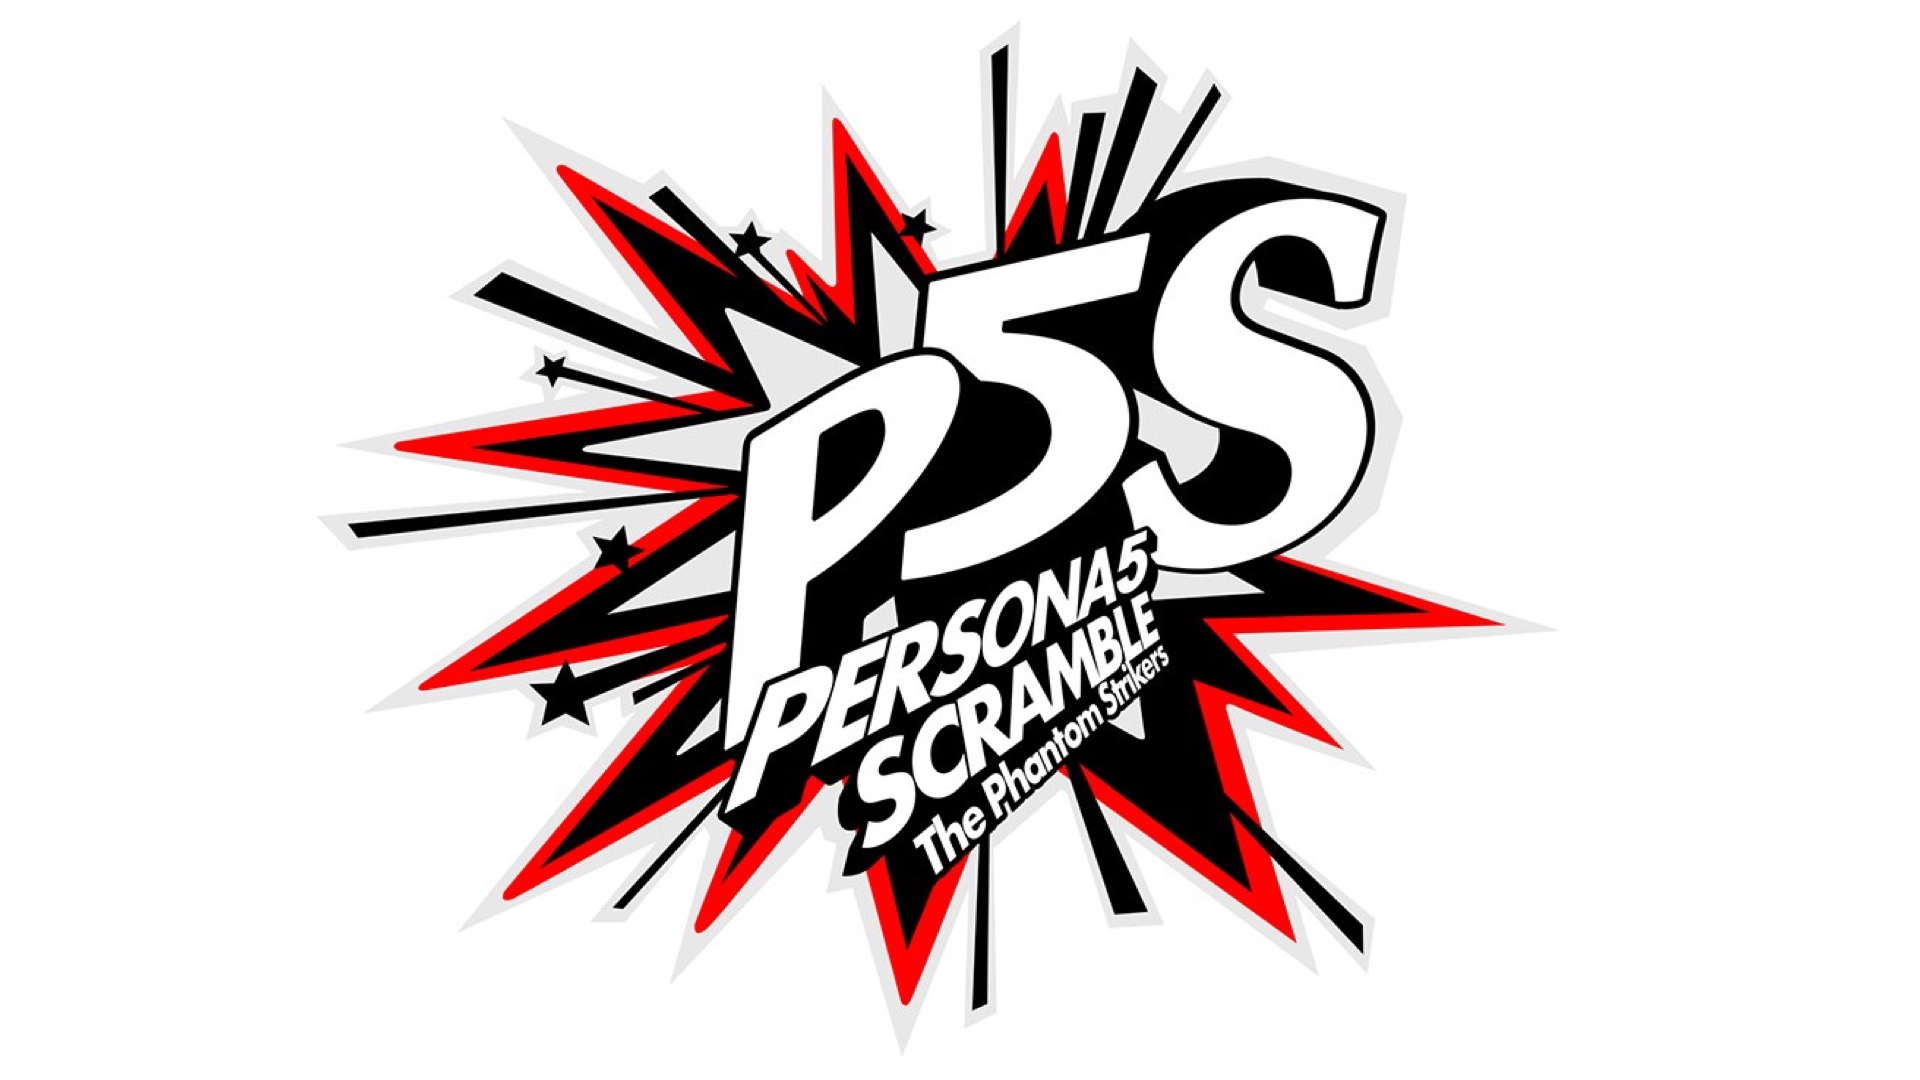 Persona 5 Scramble: The Phantom Striker